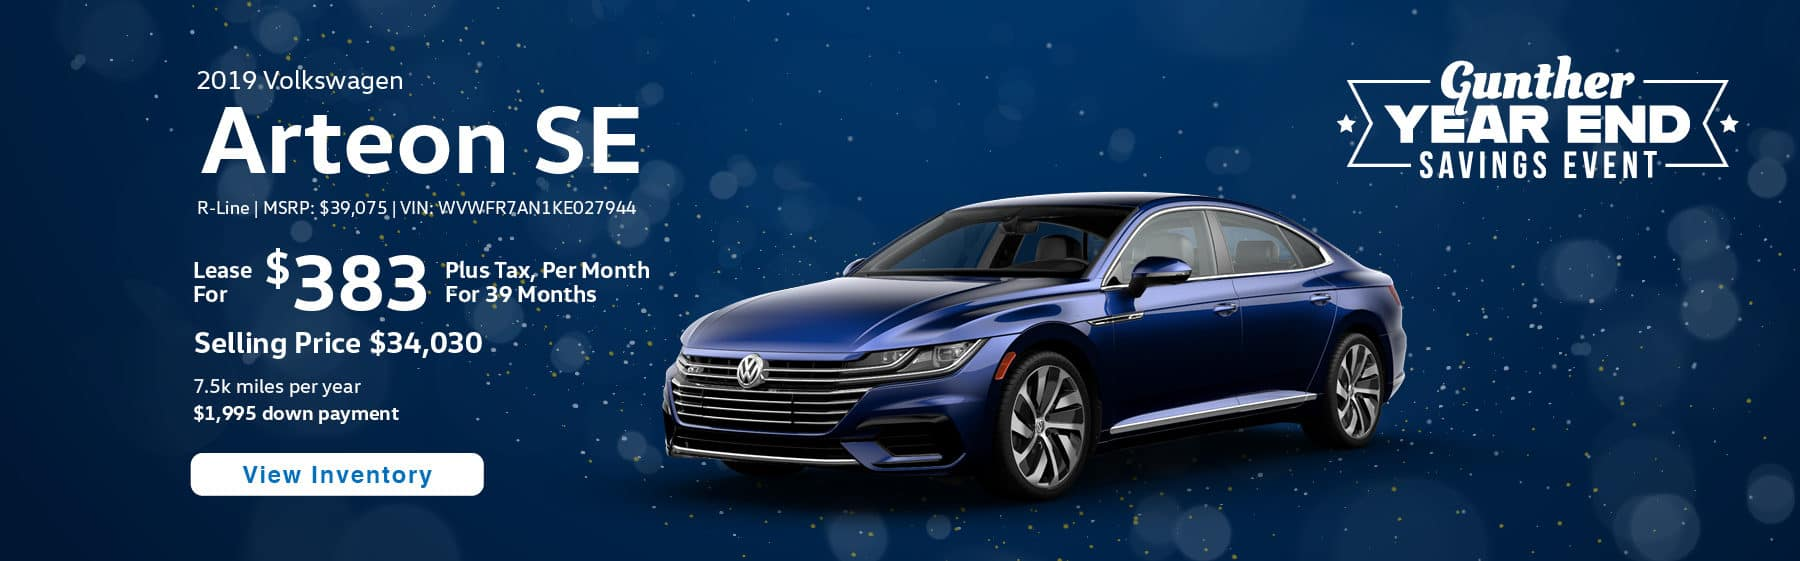 Lease the 2019 Volkswagen Arteon SE R-Line for $383 plus tax for 39 months.